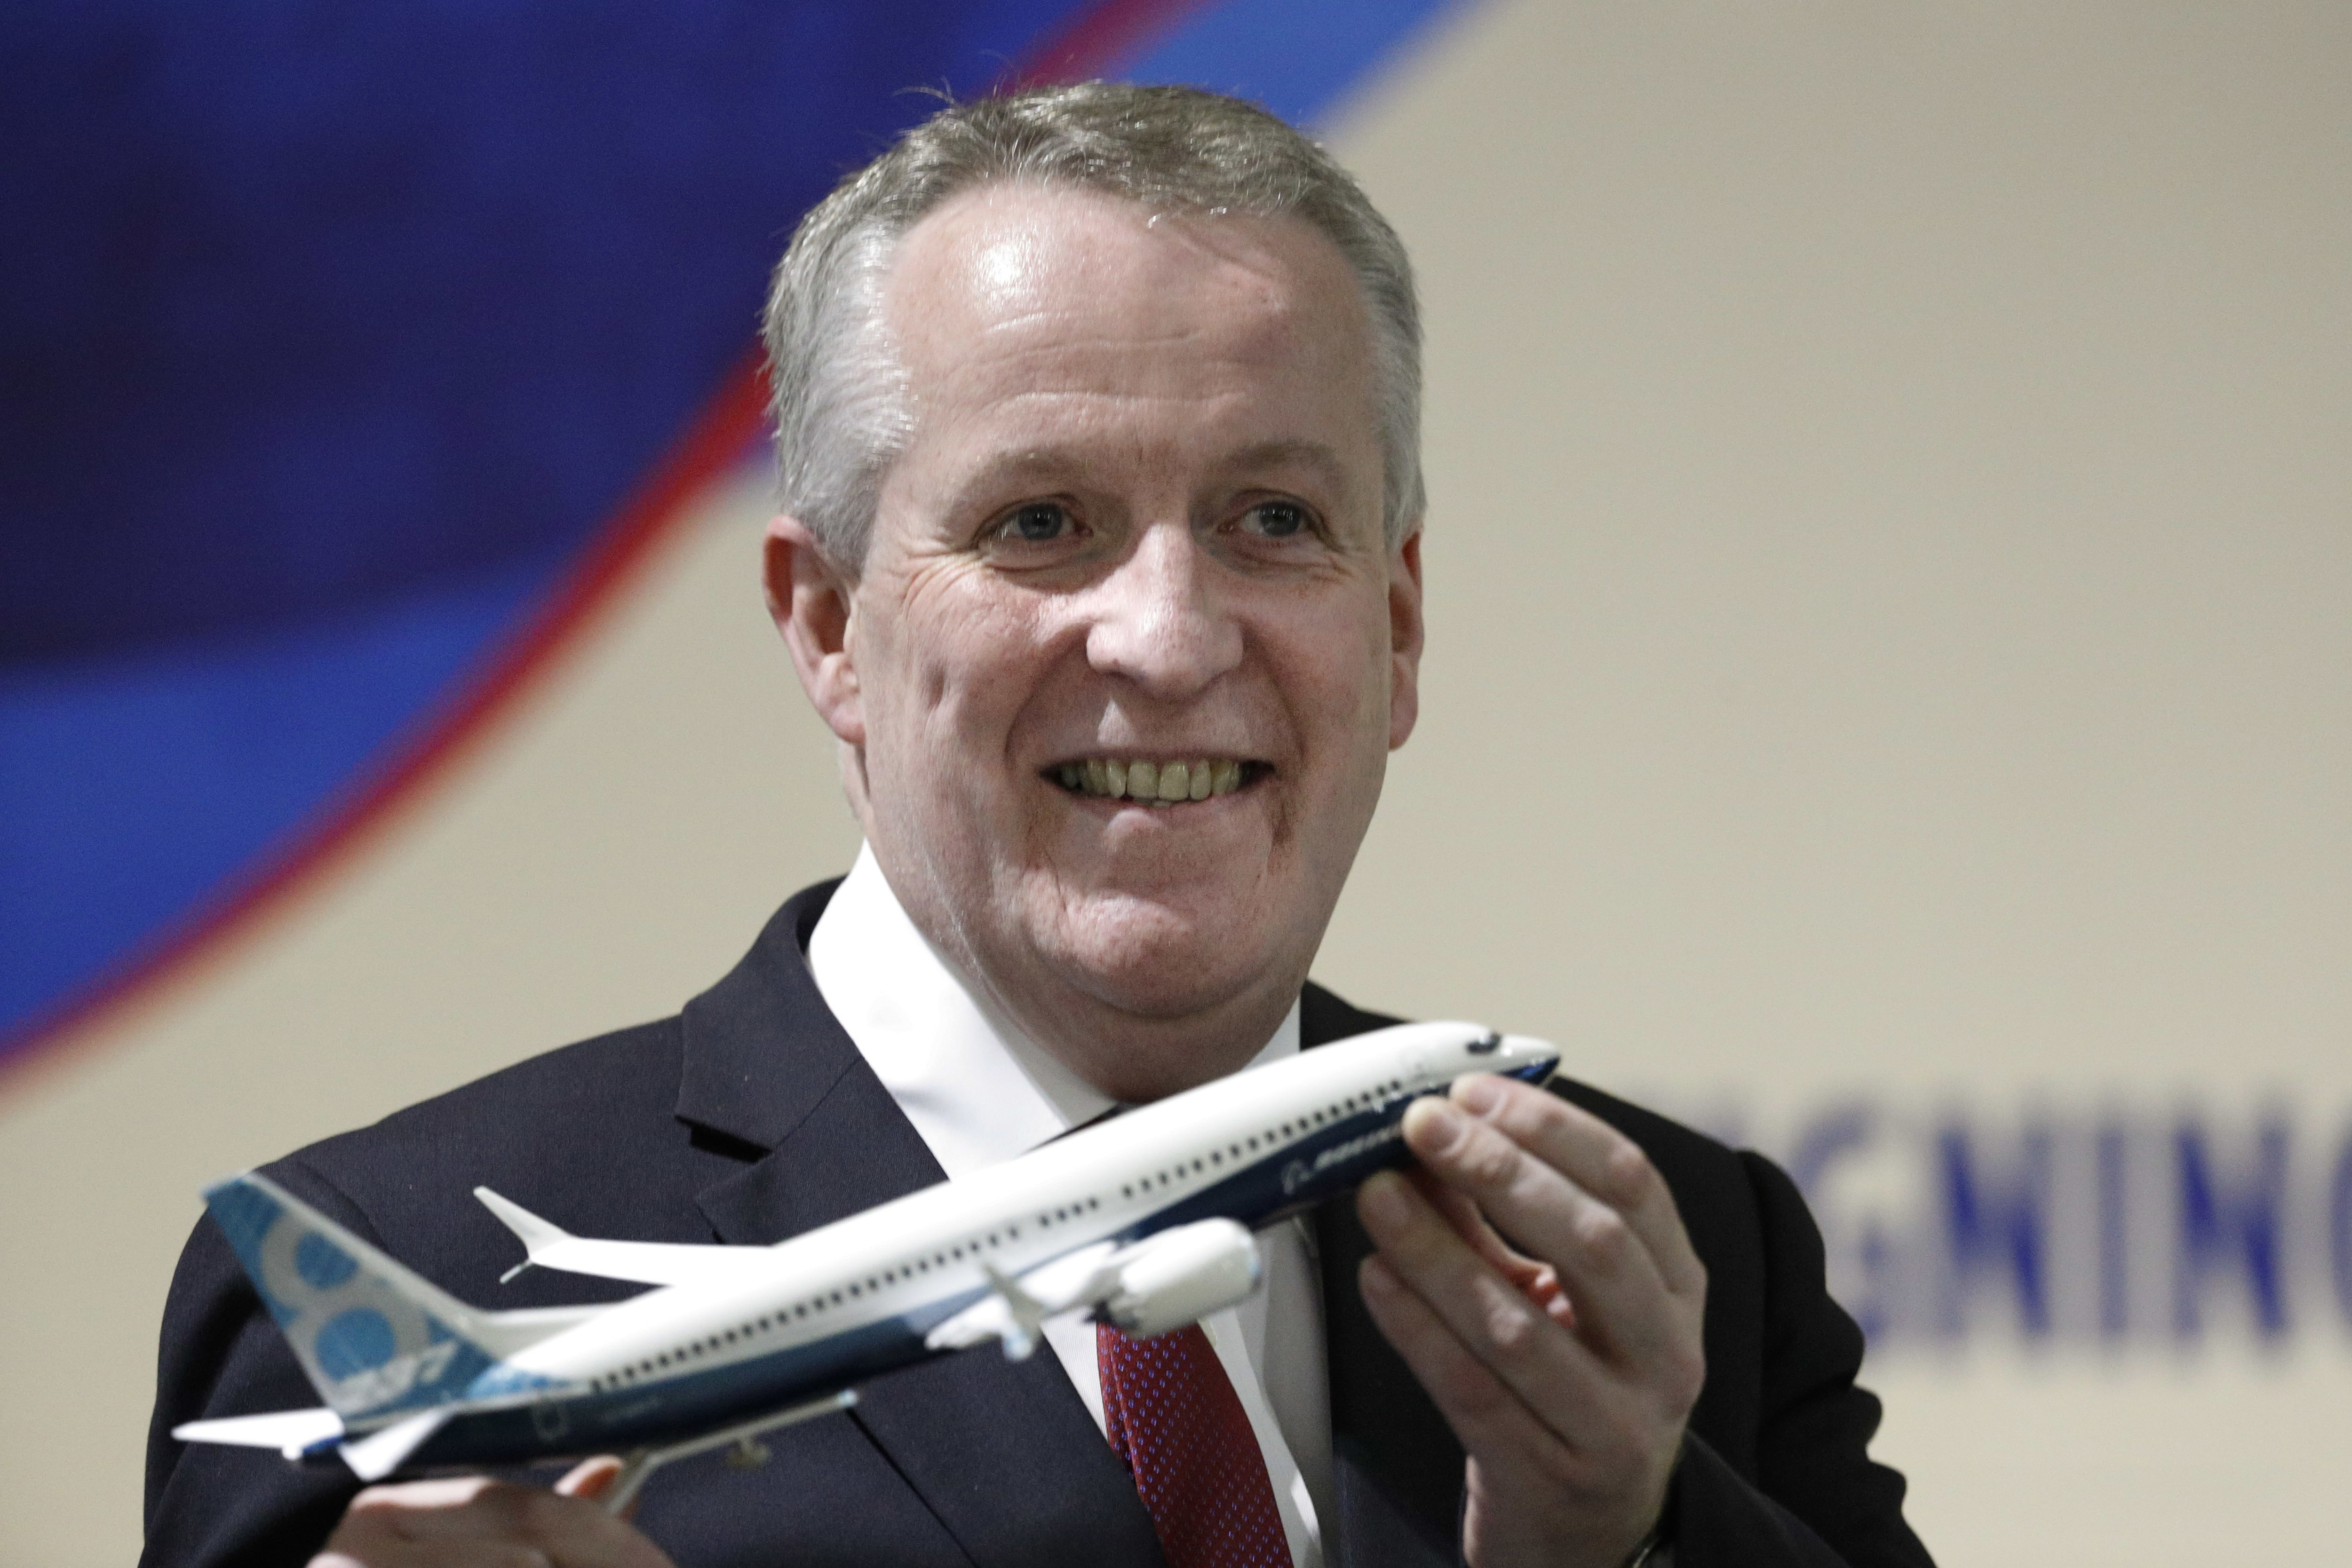 Malaysia Airlines Berhad (MAS) new Chief Executive Officer Peter Bellew holds a Boeing 737 MAX airplane model after a signing ceremony with Boeing in Putrajaya, Malaysia, Wednesday. Malaysia Airlines Berhad and Boeing announced a deal of 50 new 737 Max aircraft. | AP